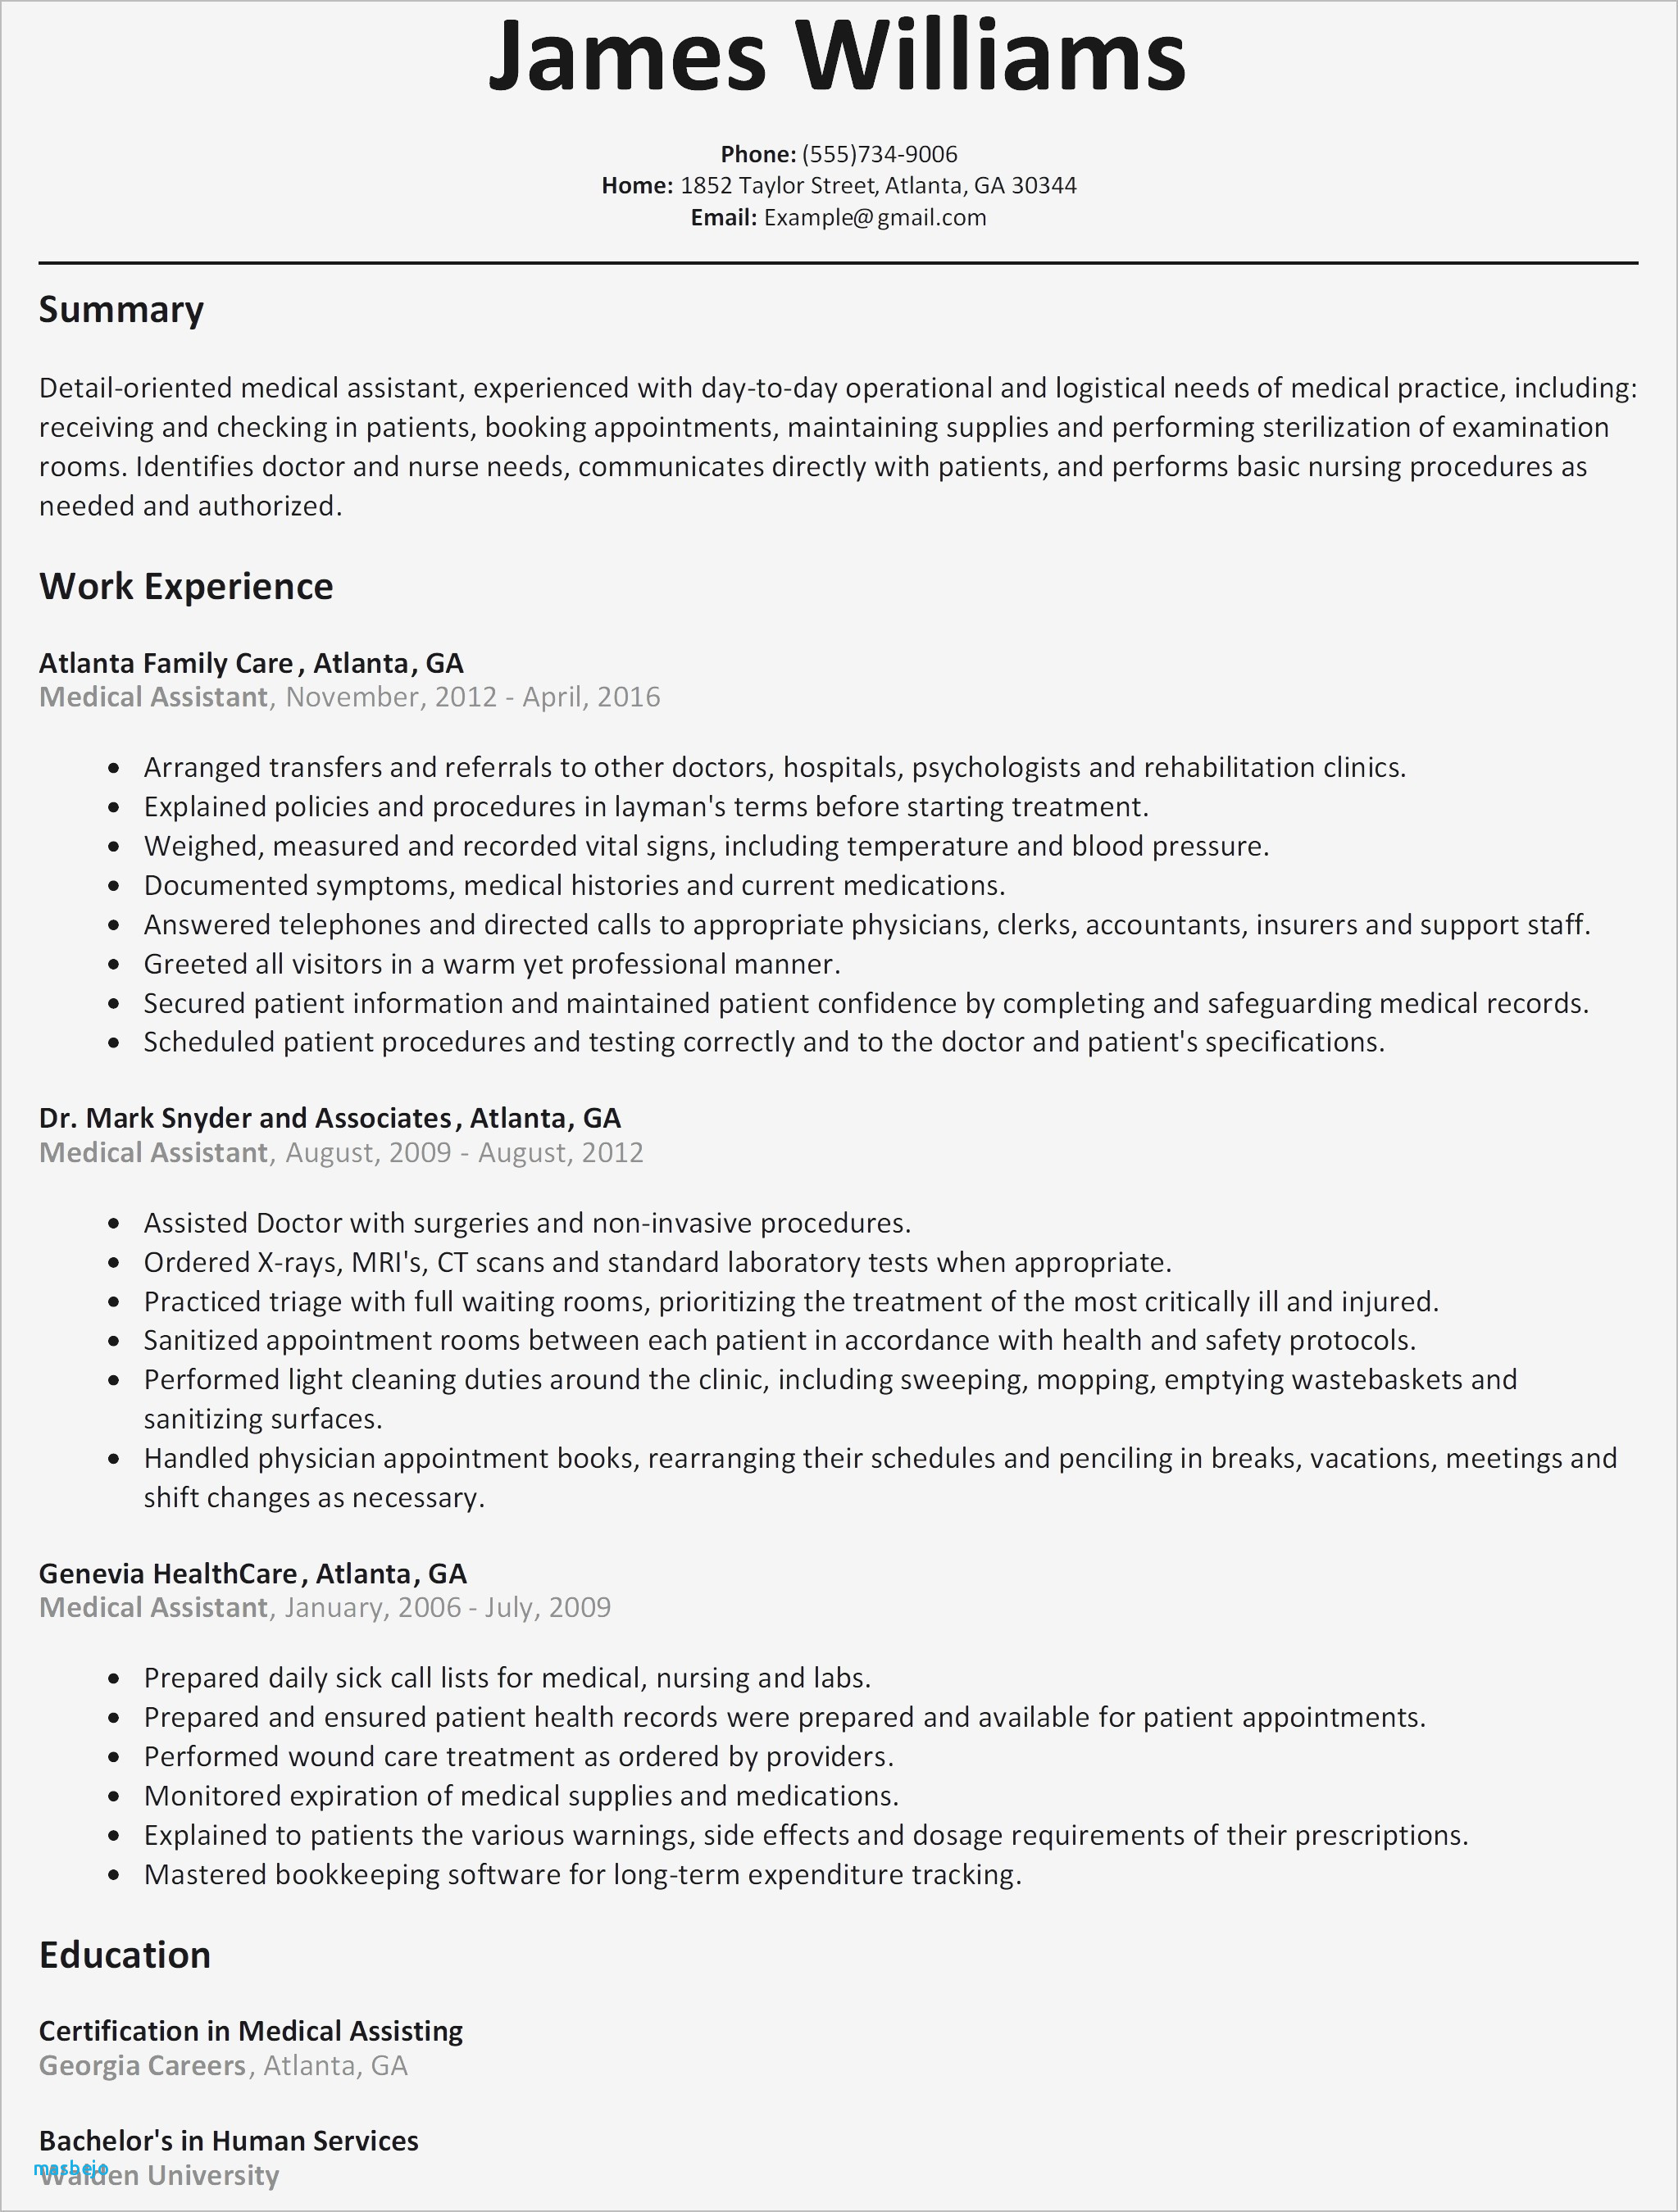 Skills and Interests On Resume - Examples Nursing Skills for Resume Luxury New Nurse Resume